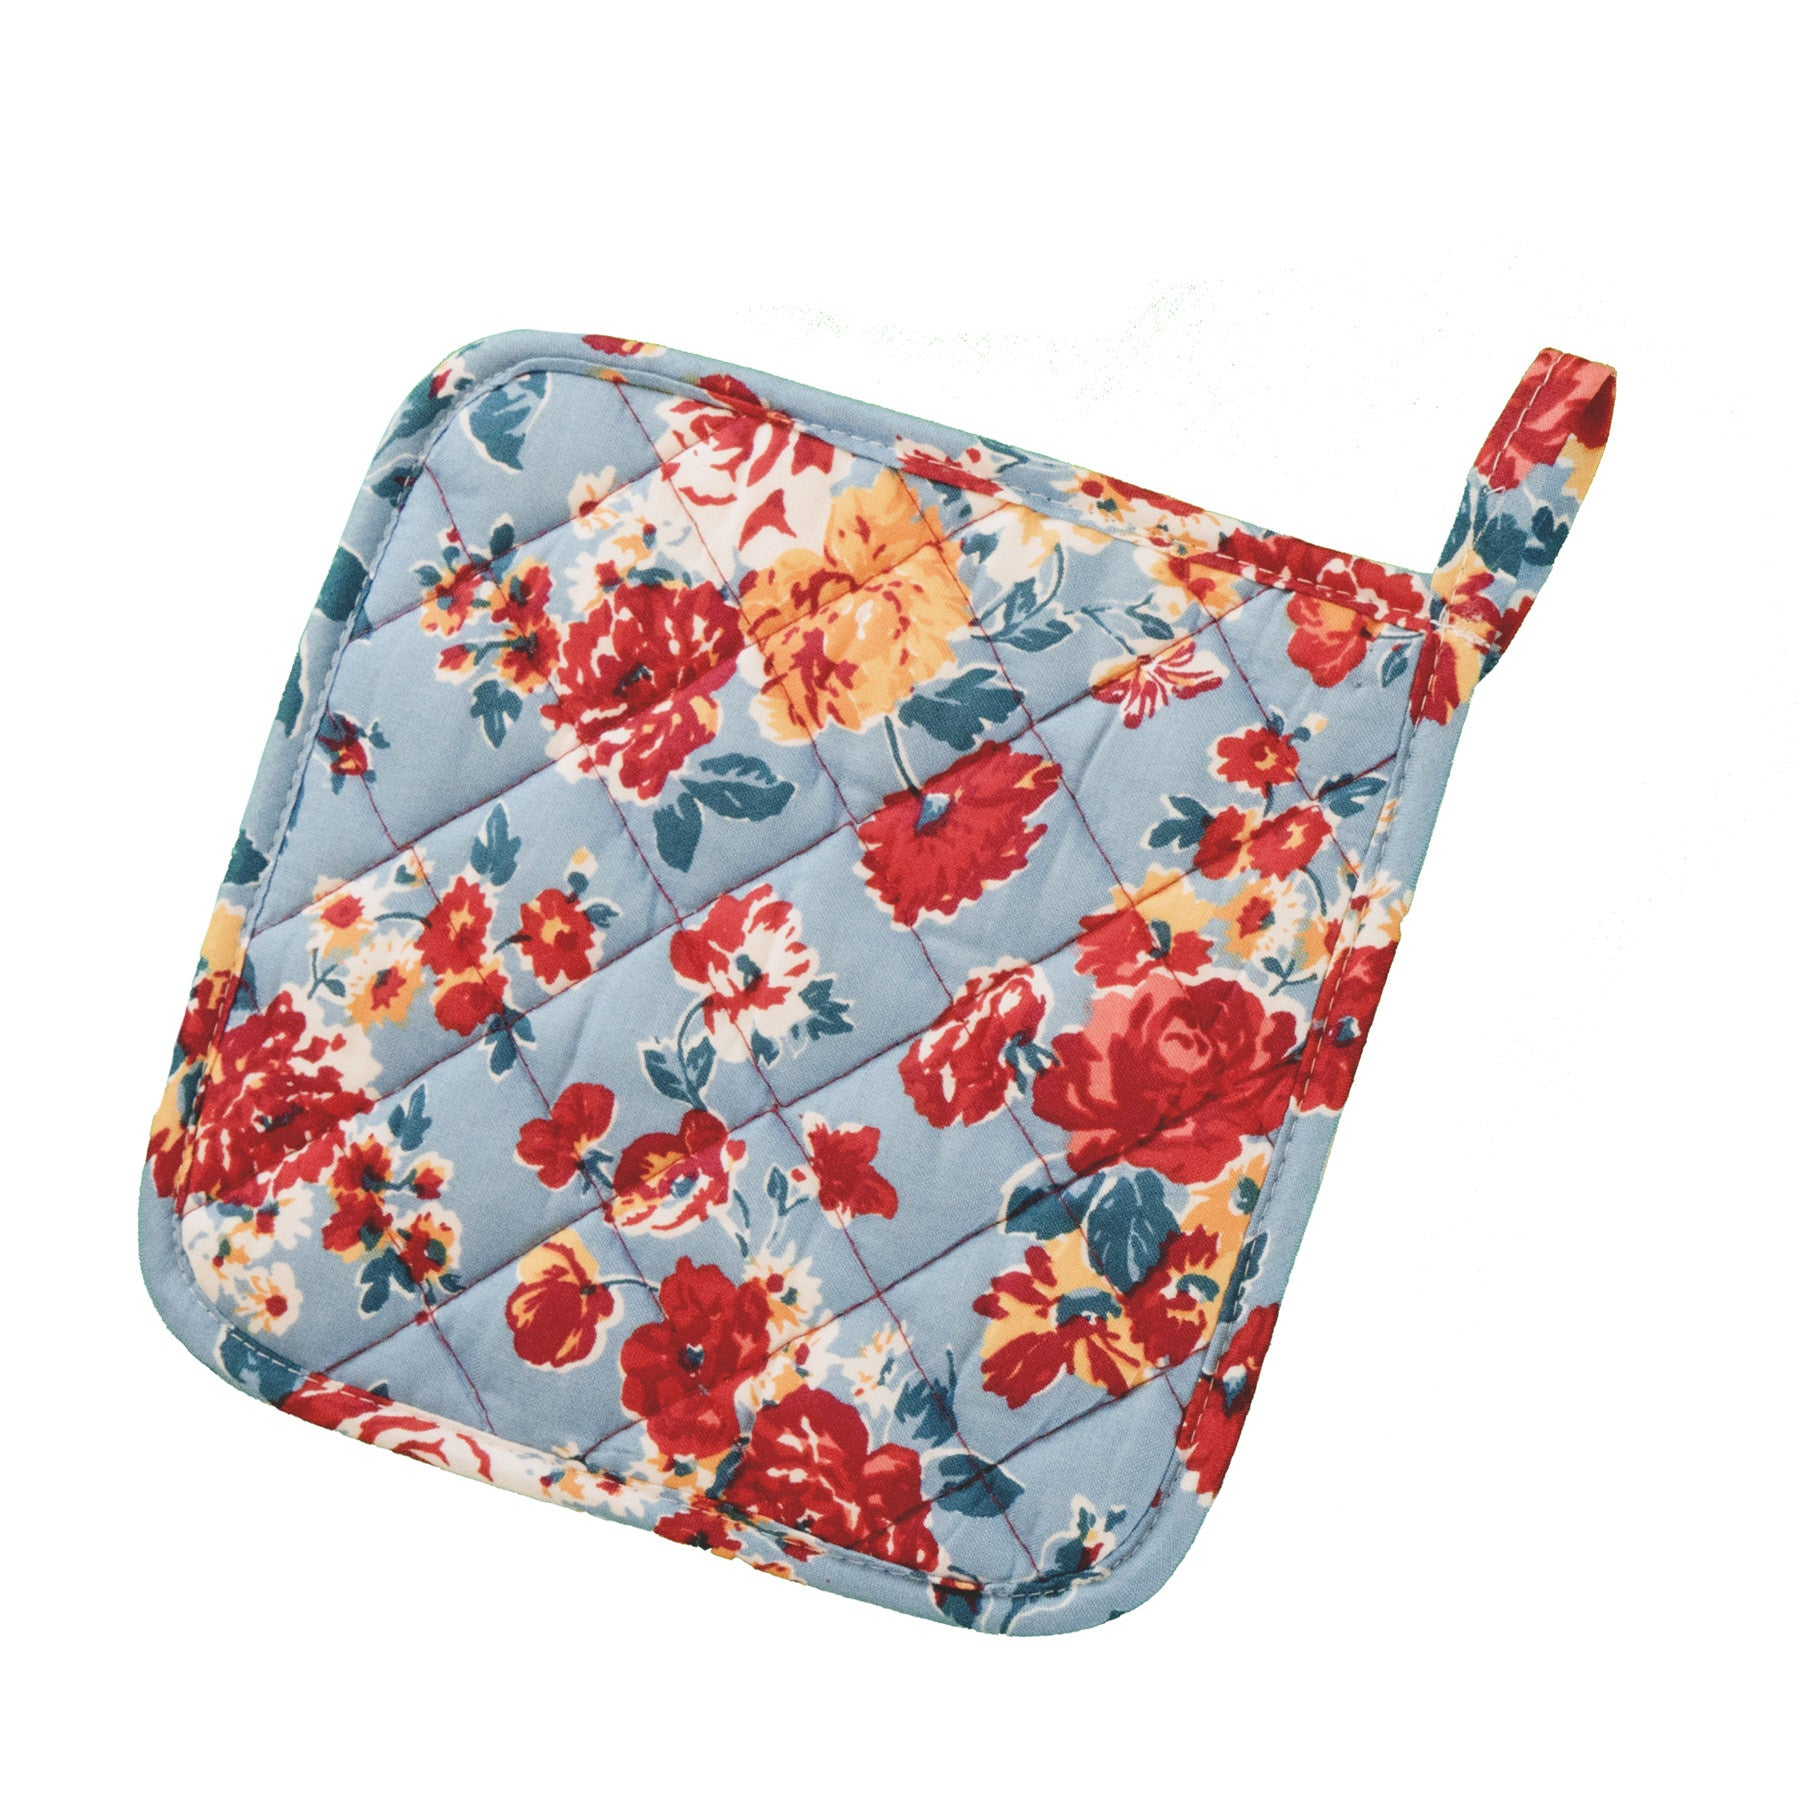 Stitch & Sparkle POT HOLDER 1 Piece Pack, Heat Resistant, 100% Cotton, Vintage, Rose Cerulean